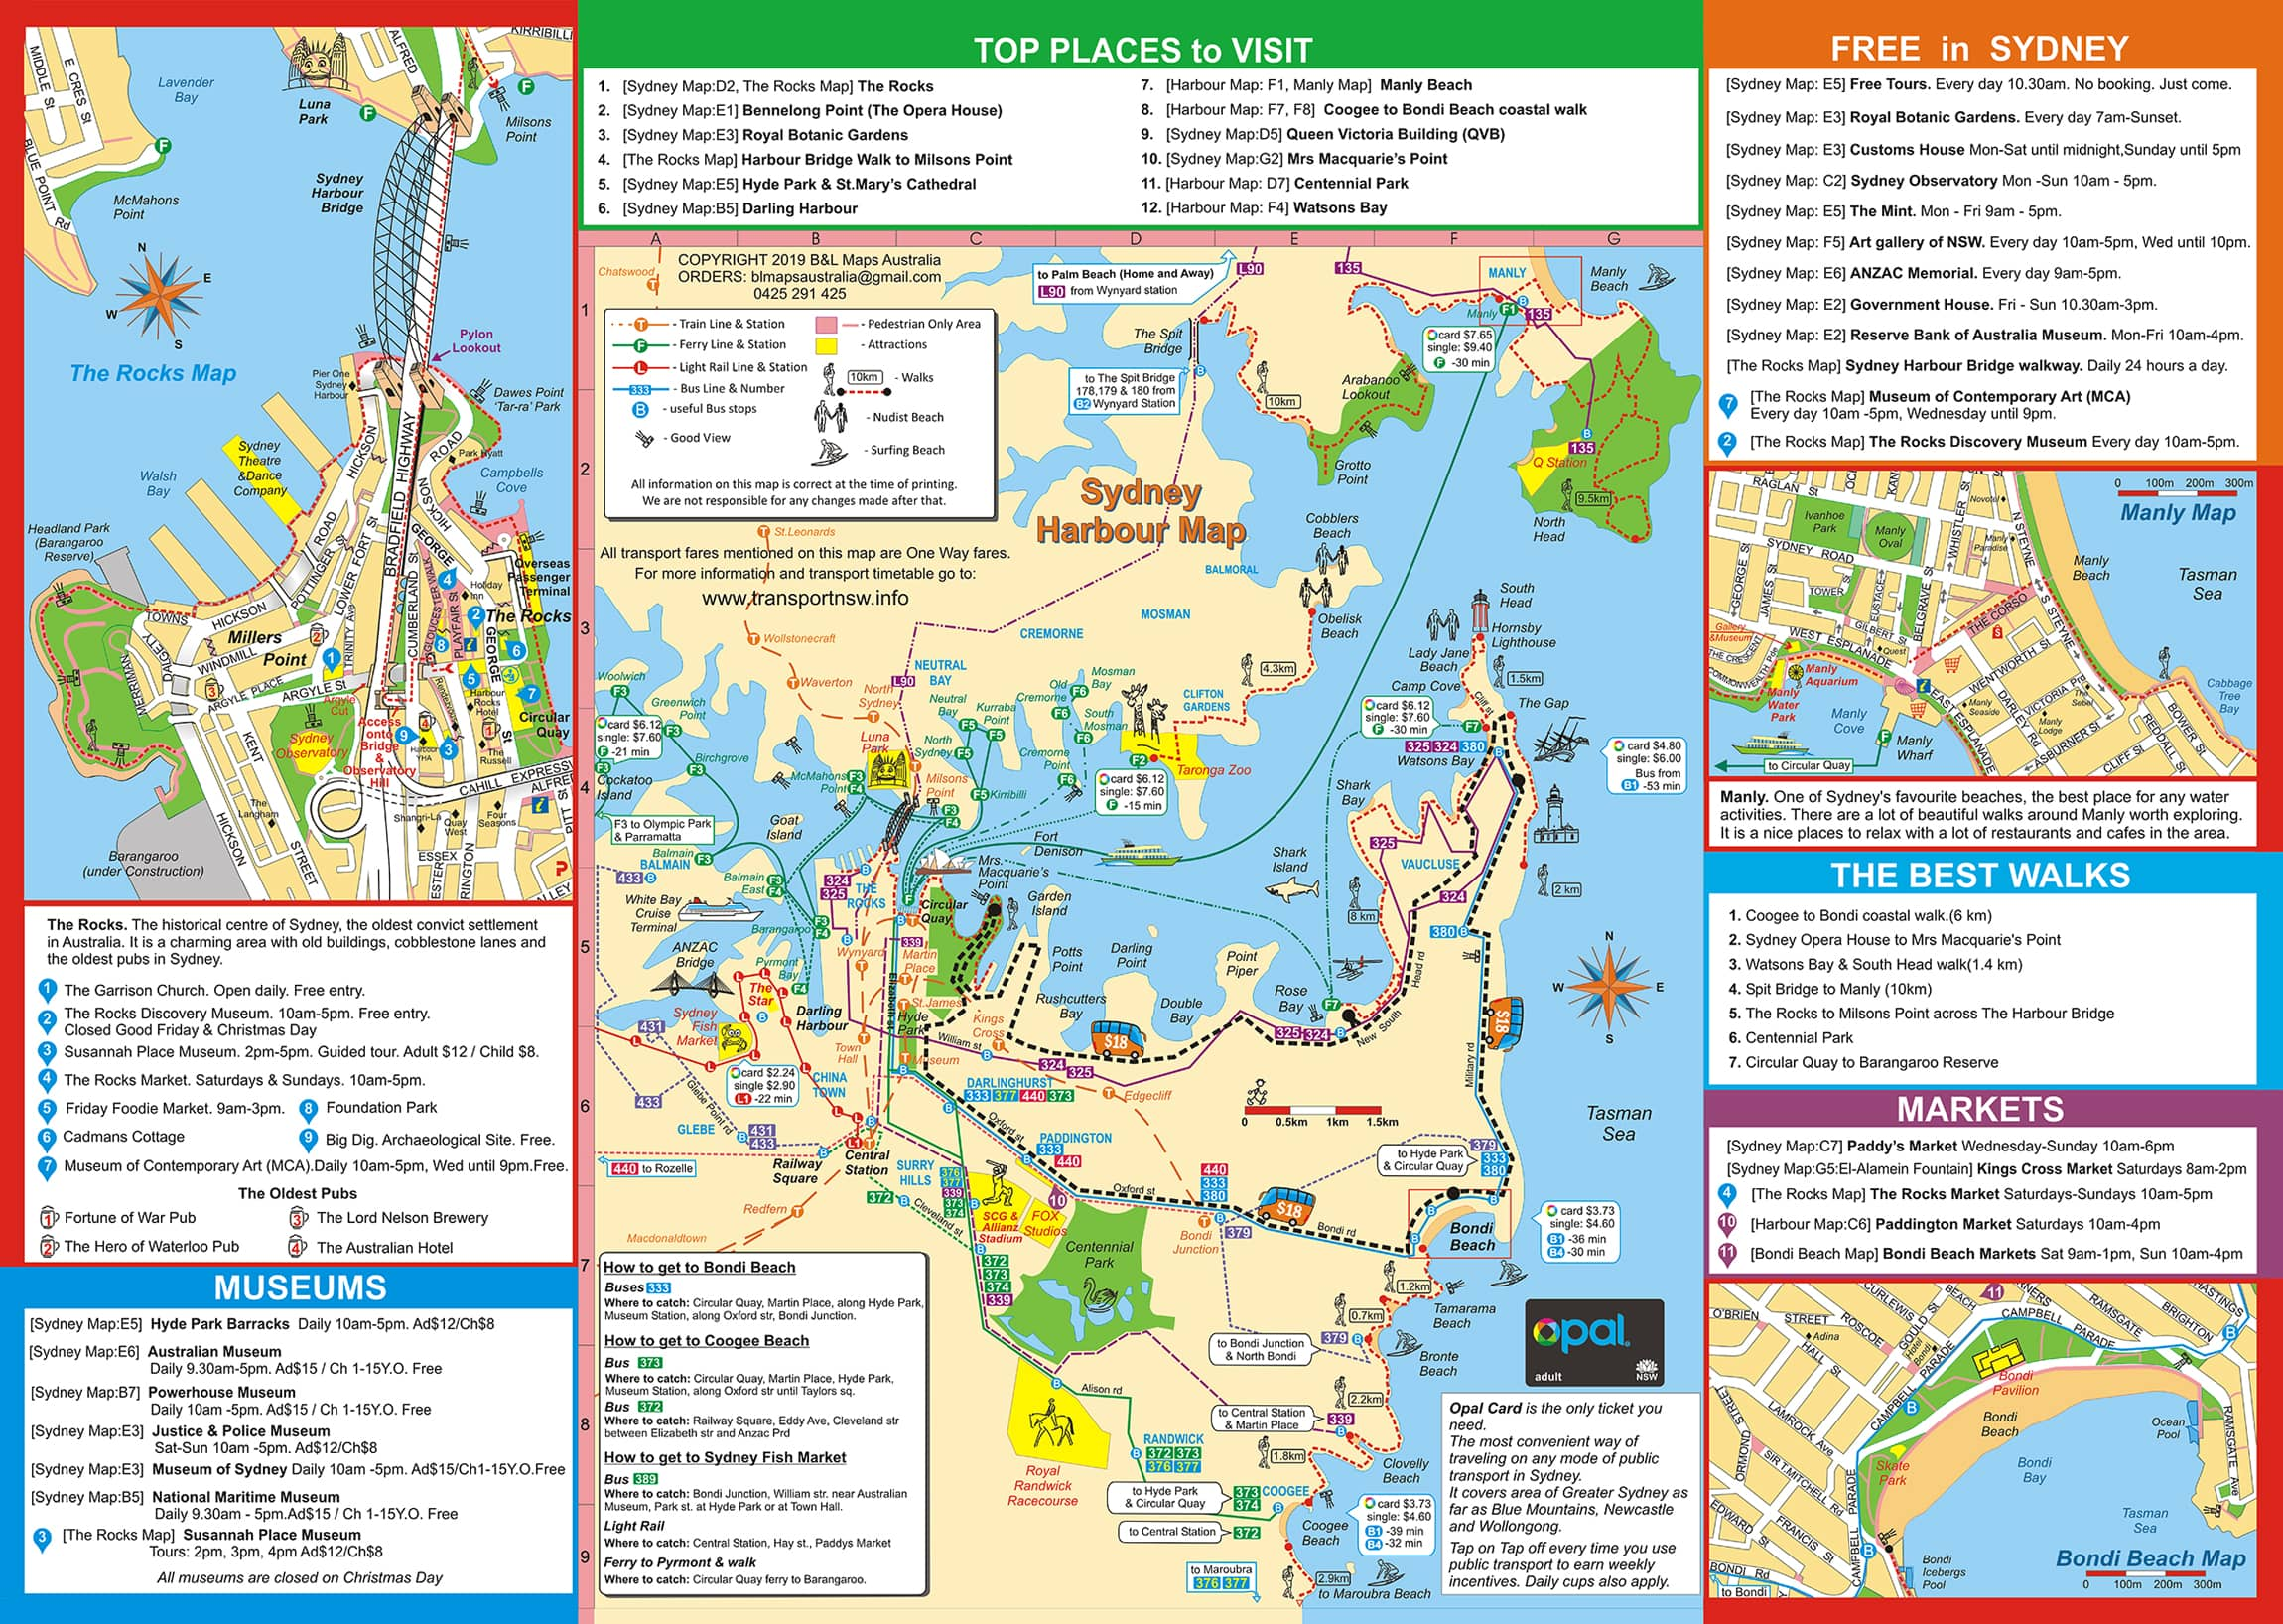 A tourist map of Sydney Harbour. The map covers the area from North Sydney until Bondi Beach and from Balmain until the Tasman Sea. It provides information on Sydney transport, attractions, walks, and lists different activities.